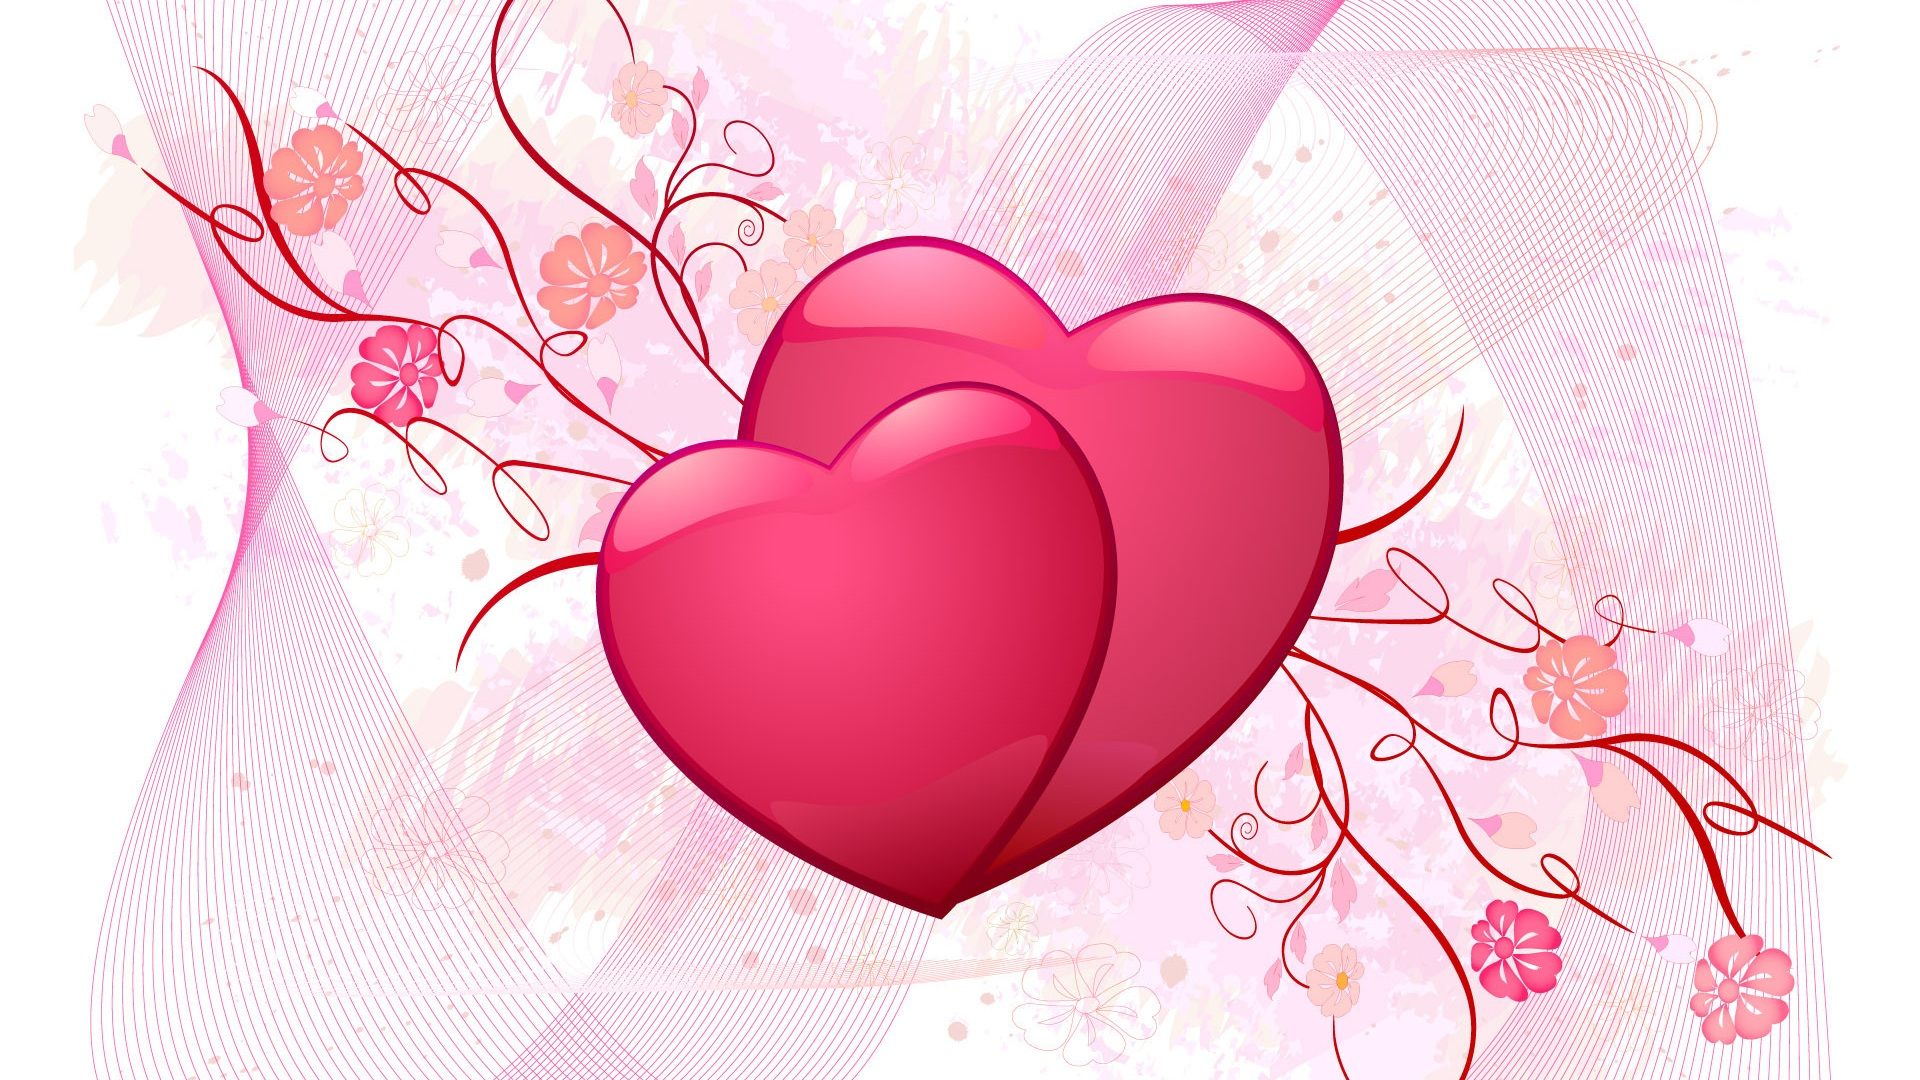 Love cute Heart Wallpaper : Pink Love Hearts - clipArt Best